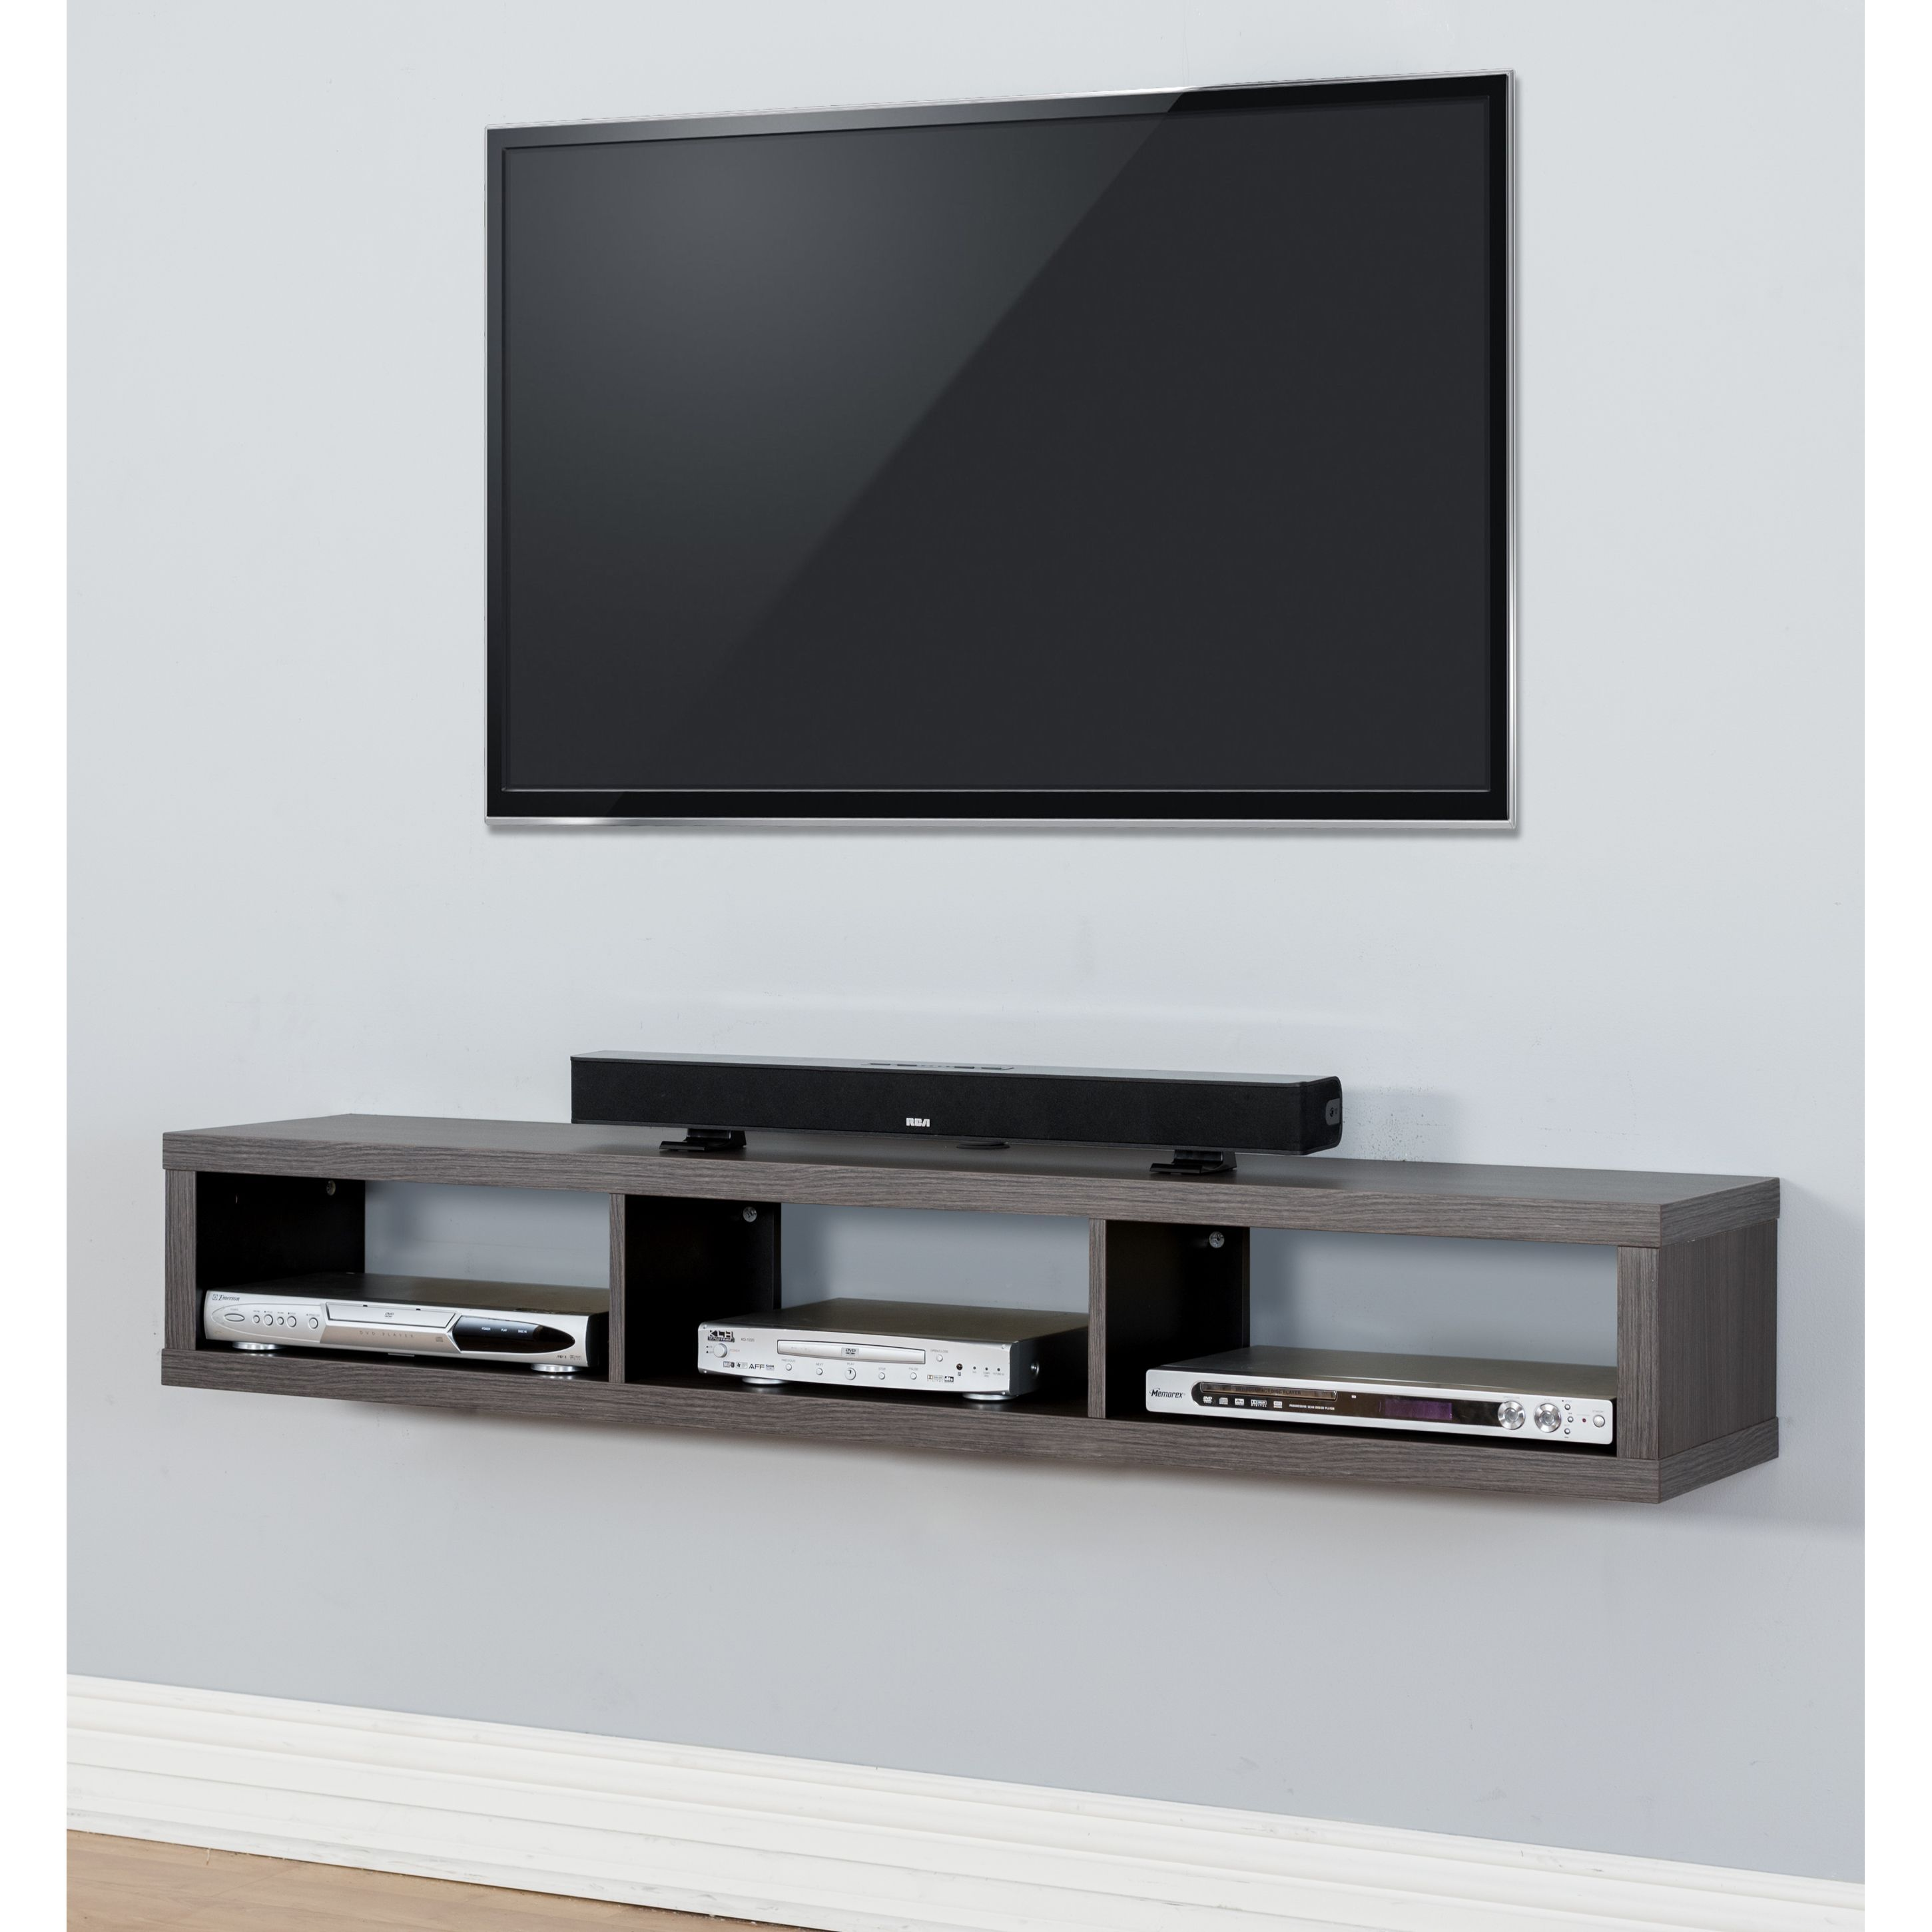 18 Chic And Modern Tv Wall Mount Ideas For Living Room Wall  # Meuble Console Tv